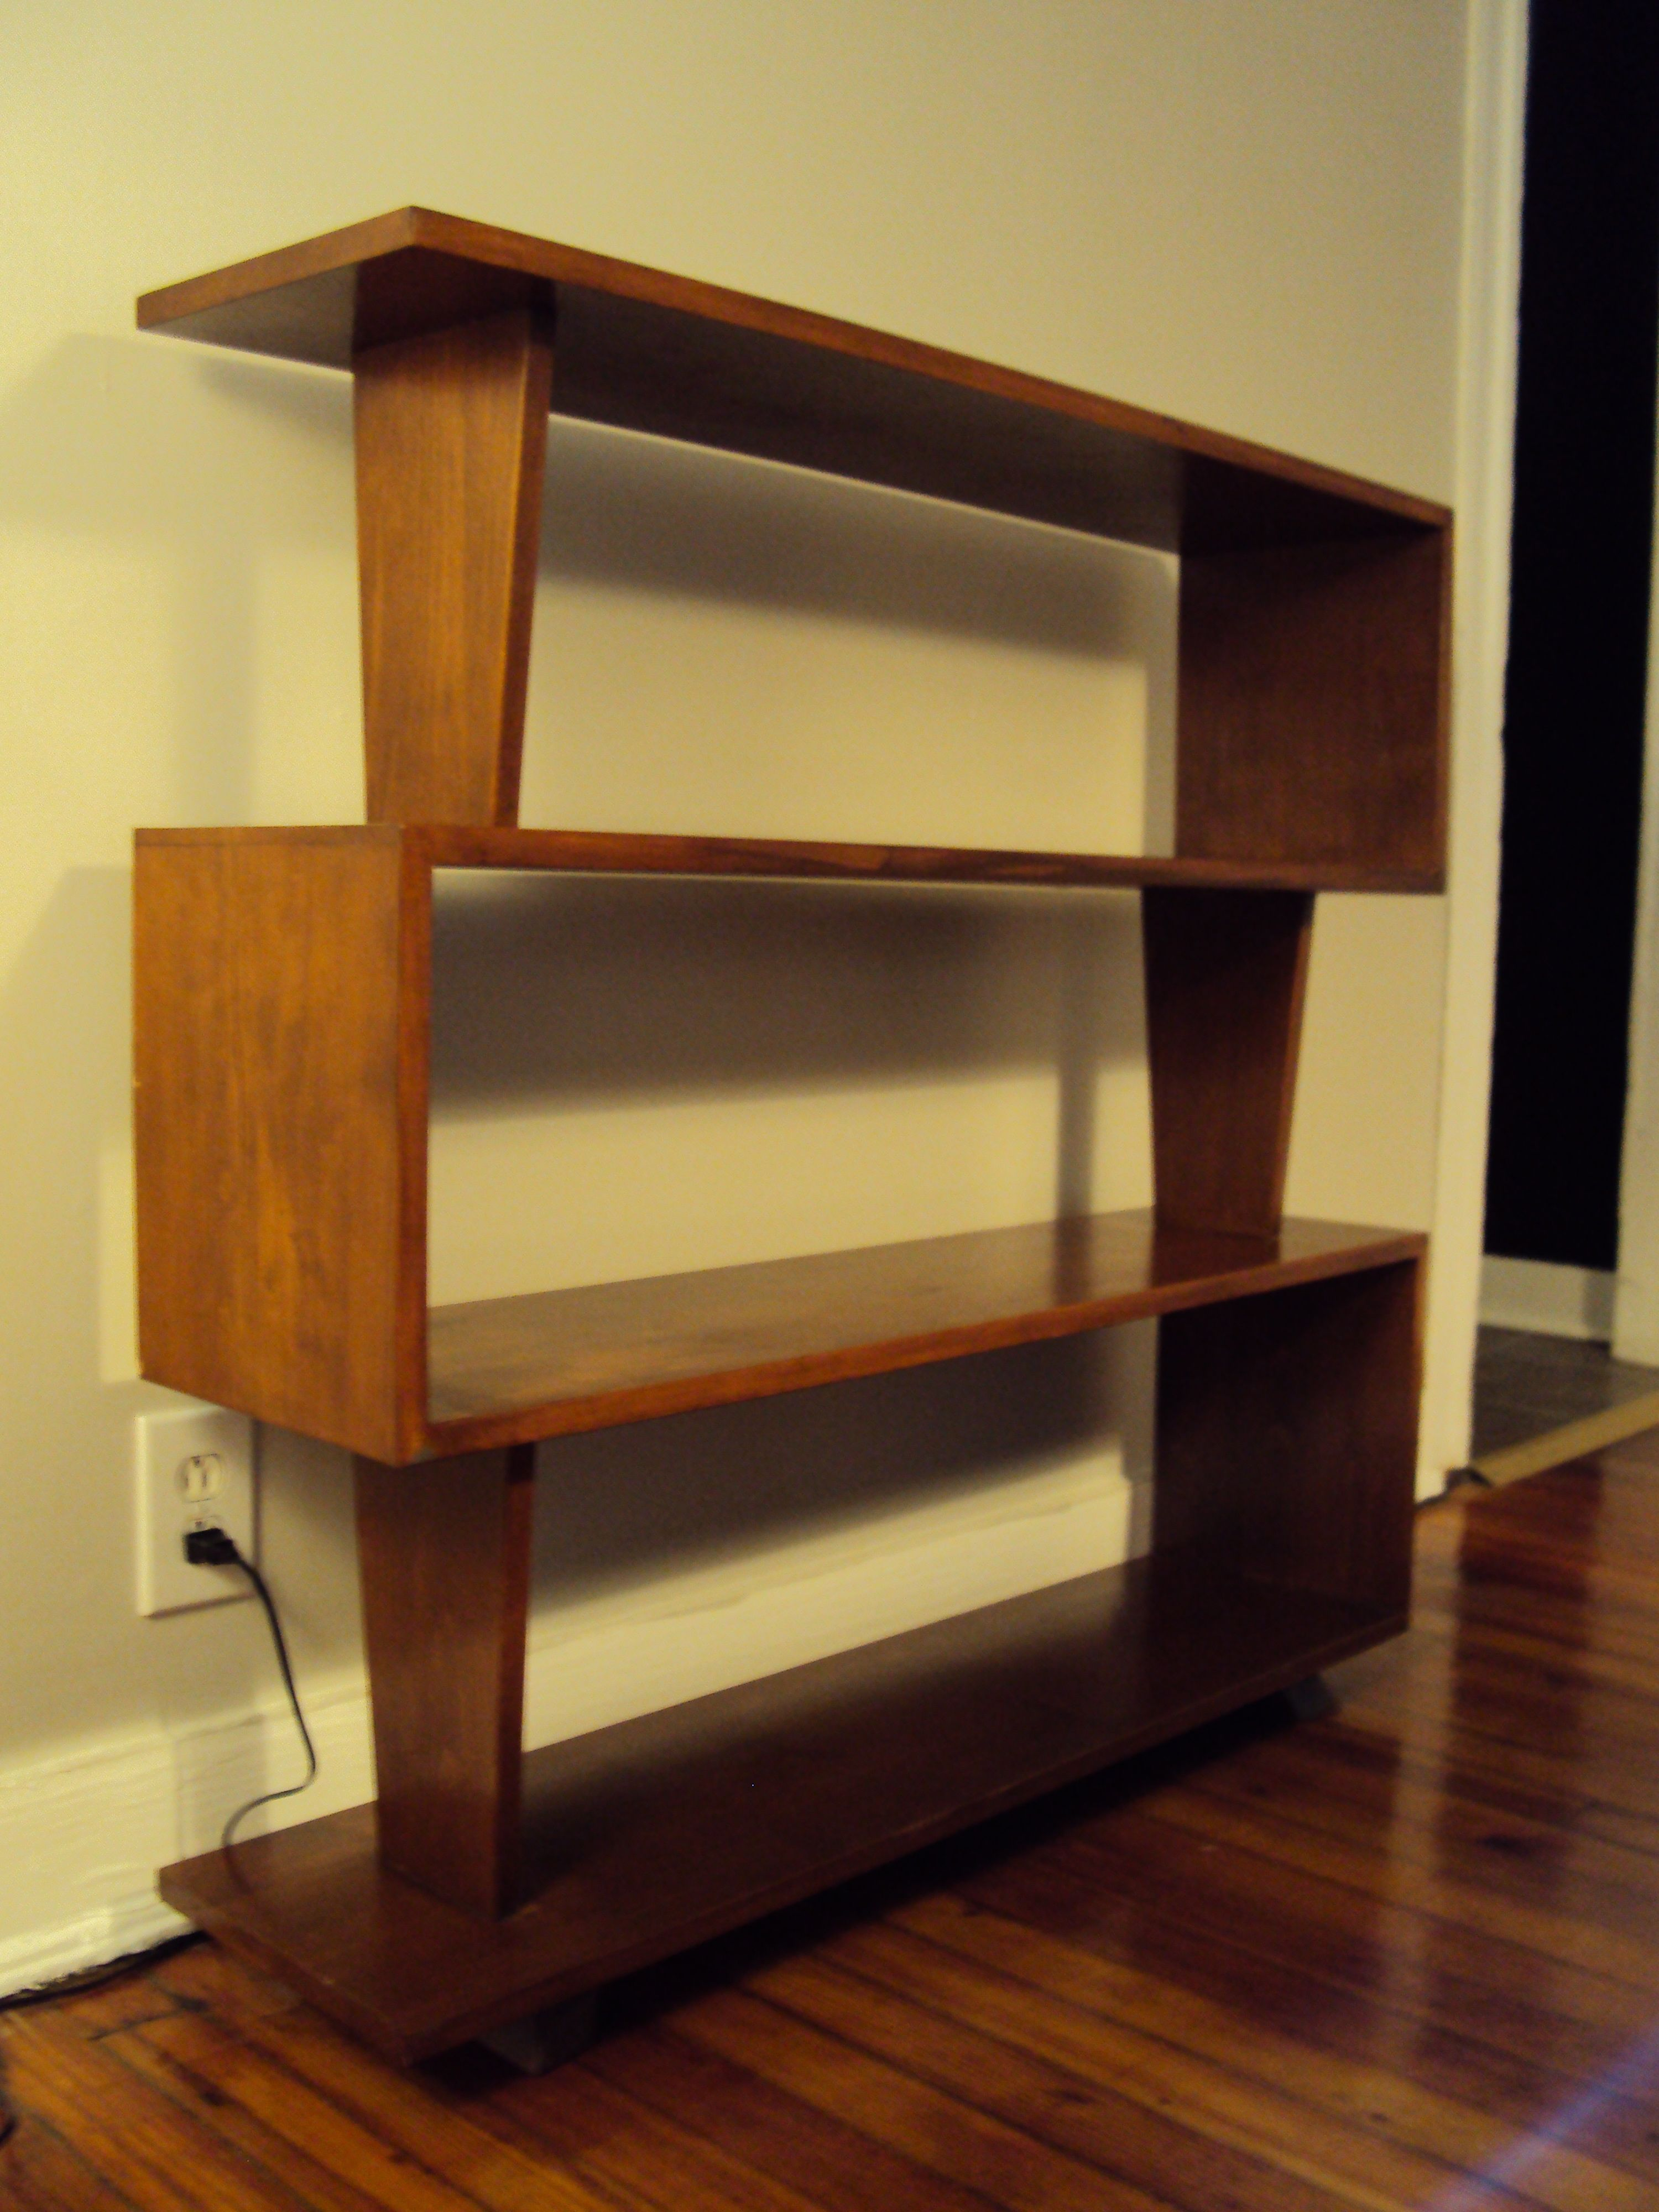 How To Furnish House With Modern Furniture: Awesome Thrift Store Find. Mid Century Style.